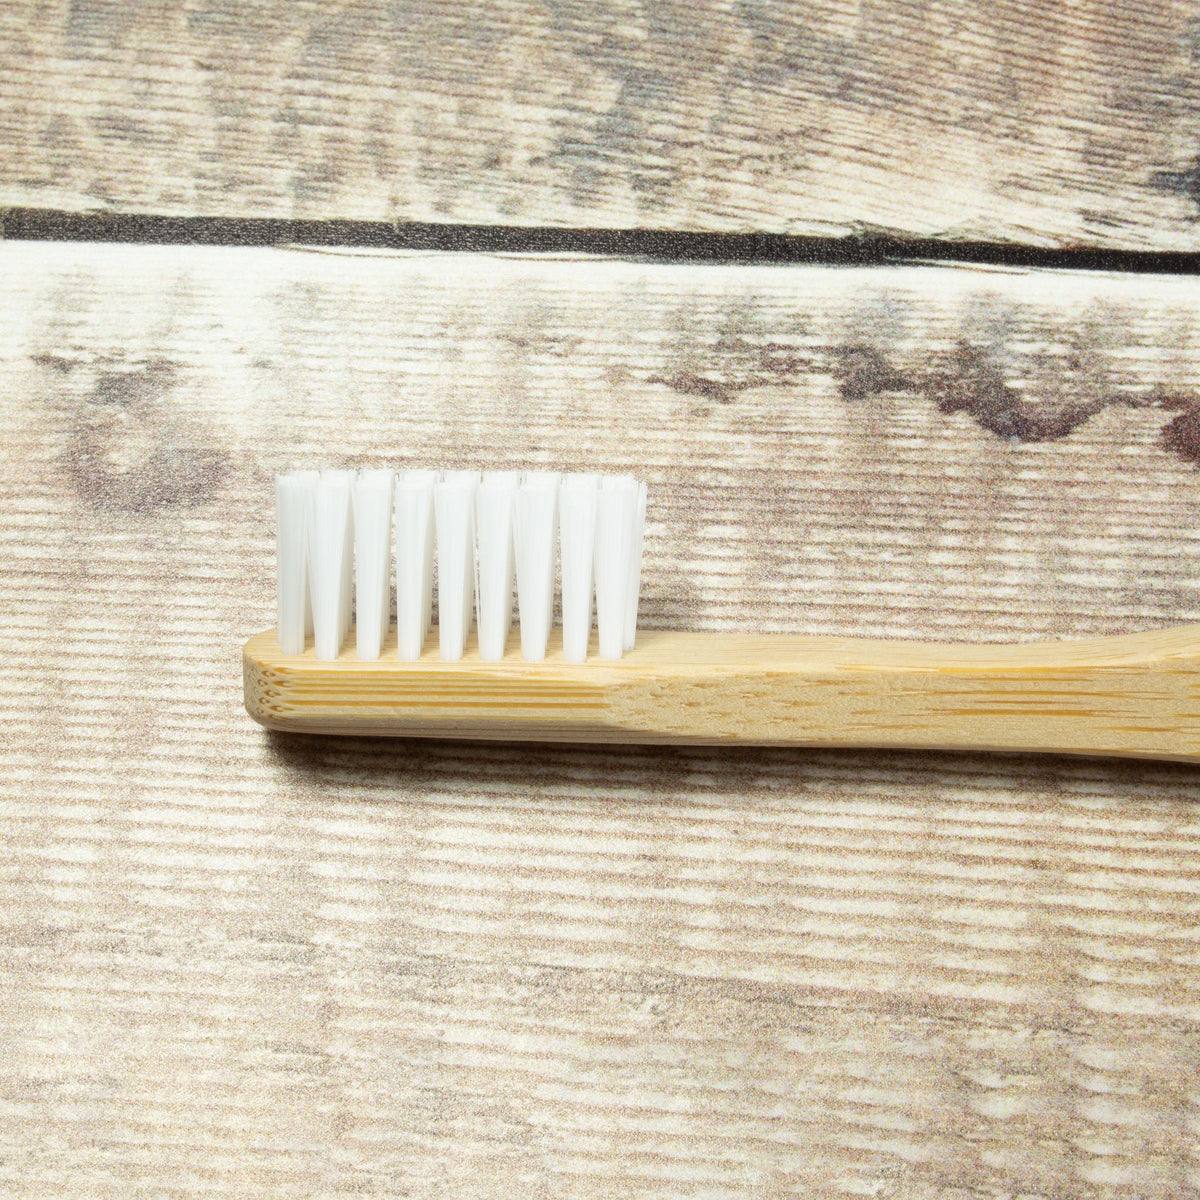 Bamboo Toothbrush - Red | Toothbrush - The Naughty Shrew